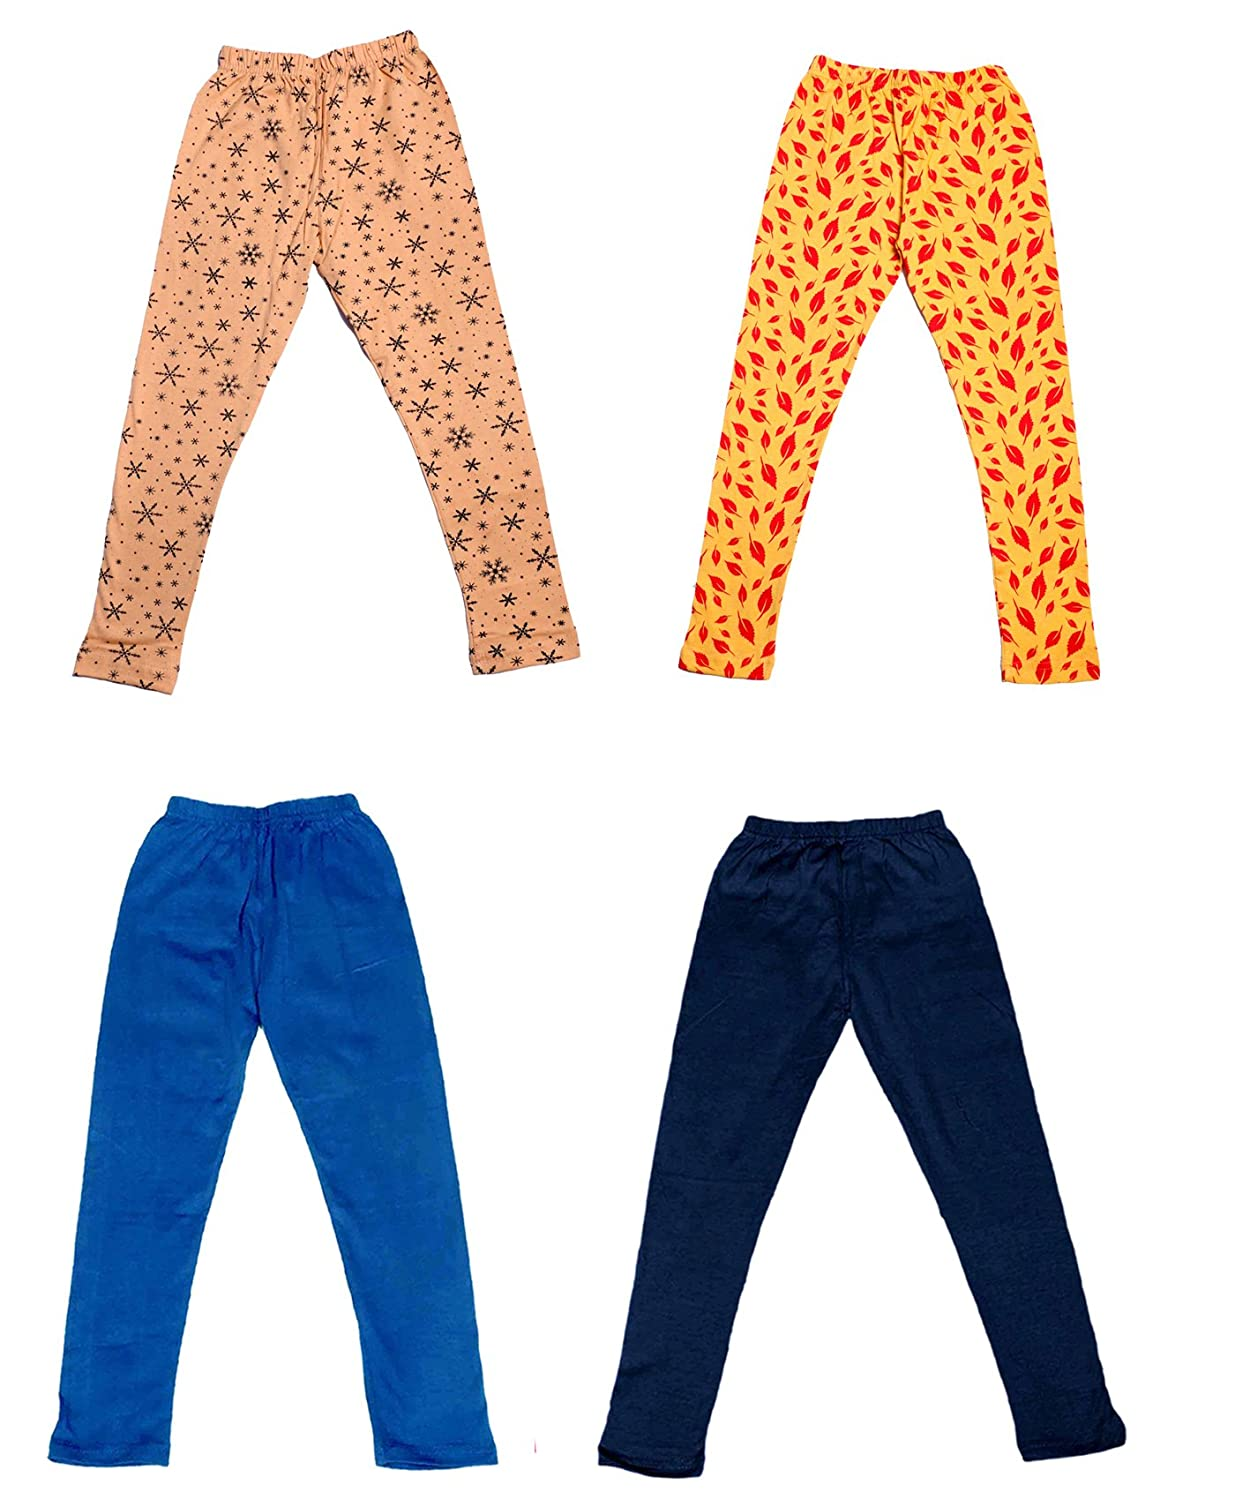 Indistar Girls 2 Cotton Solid Legging Pants and 2 Cotton Printed Legging Pants Pack Of 4 /_Multicolor/_Size-4-5 Years/_71409101819-IW-P4-26